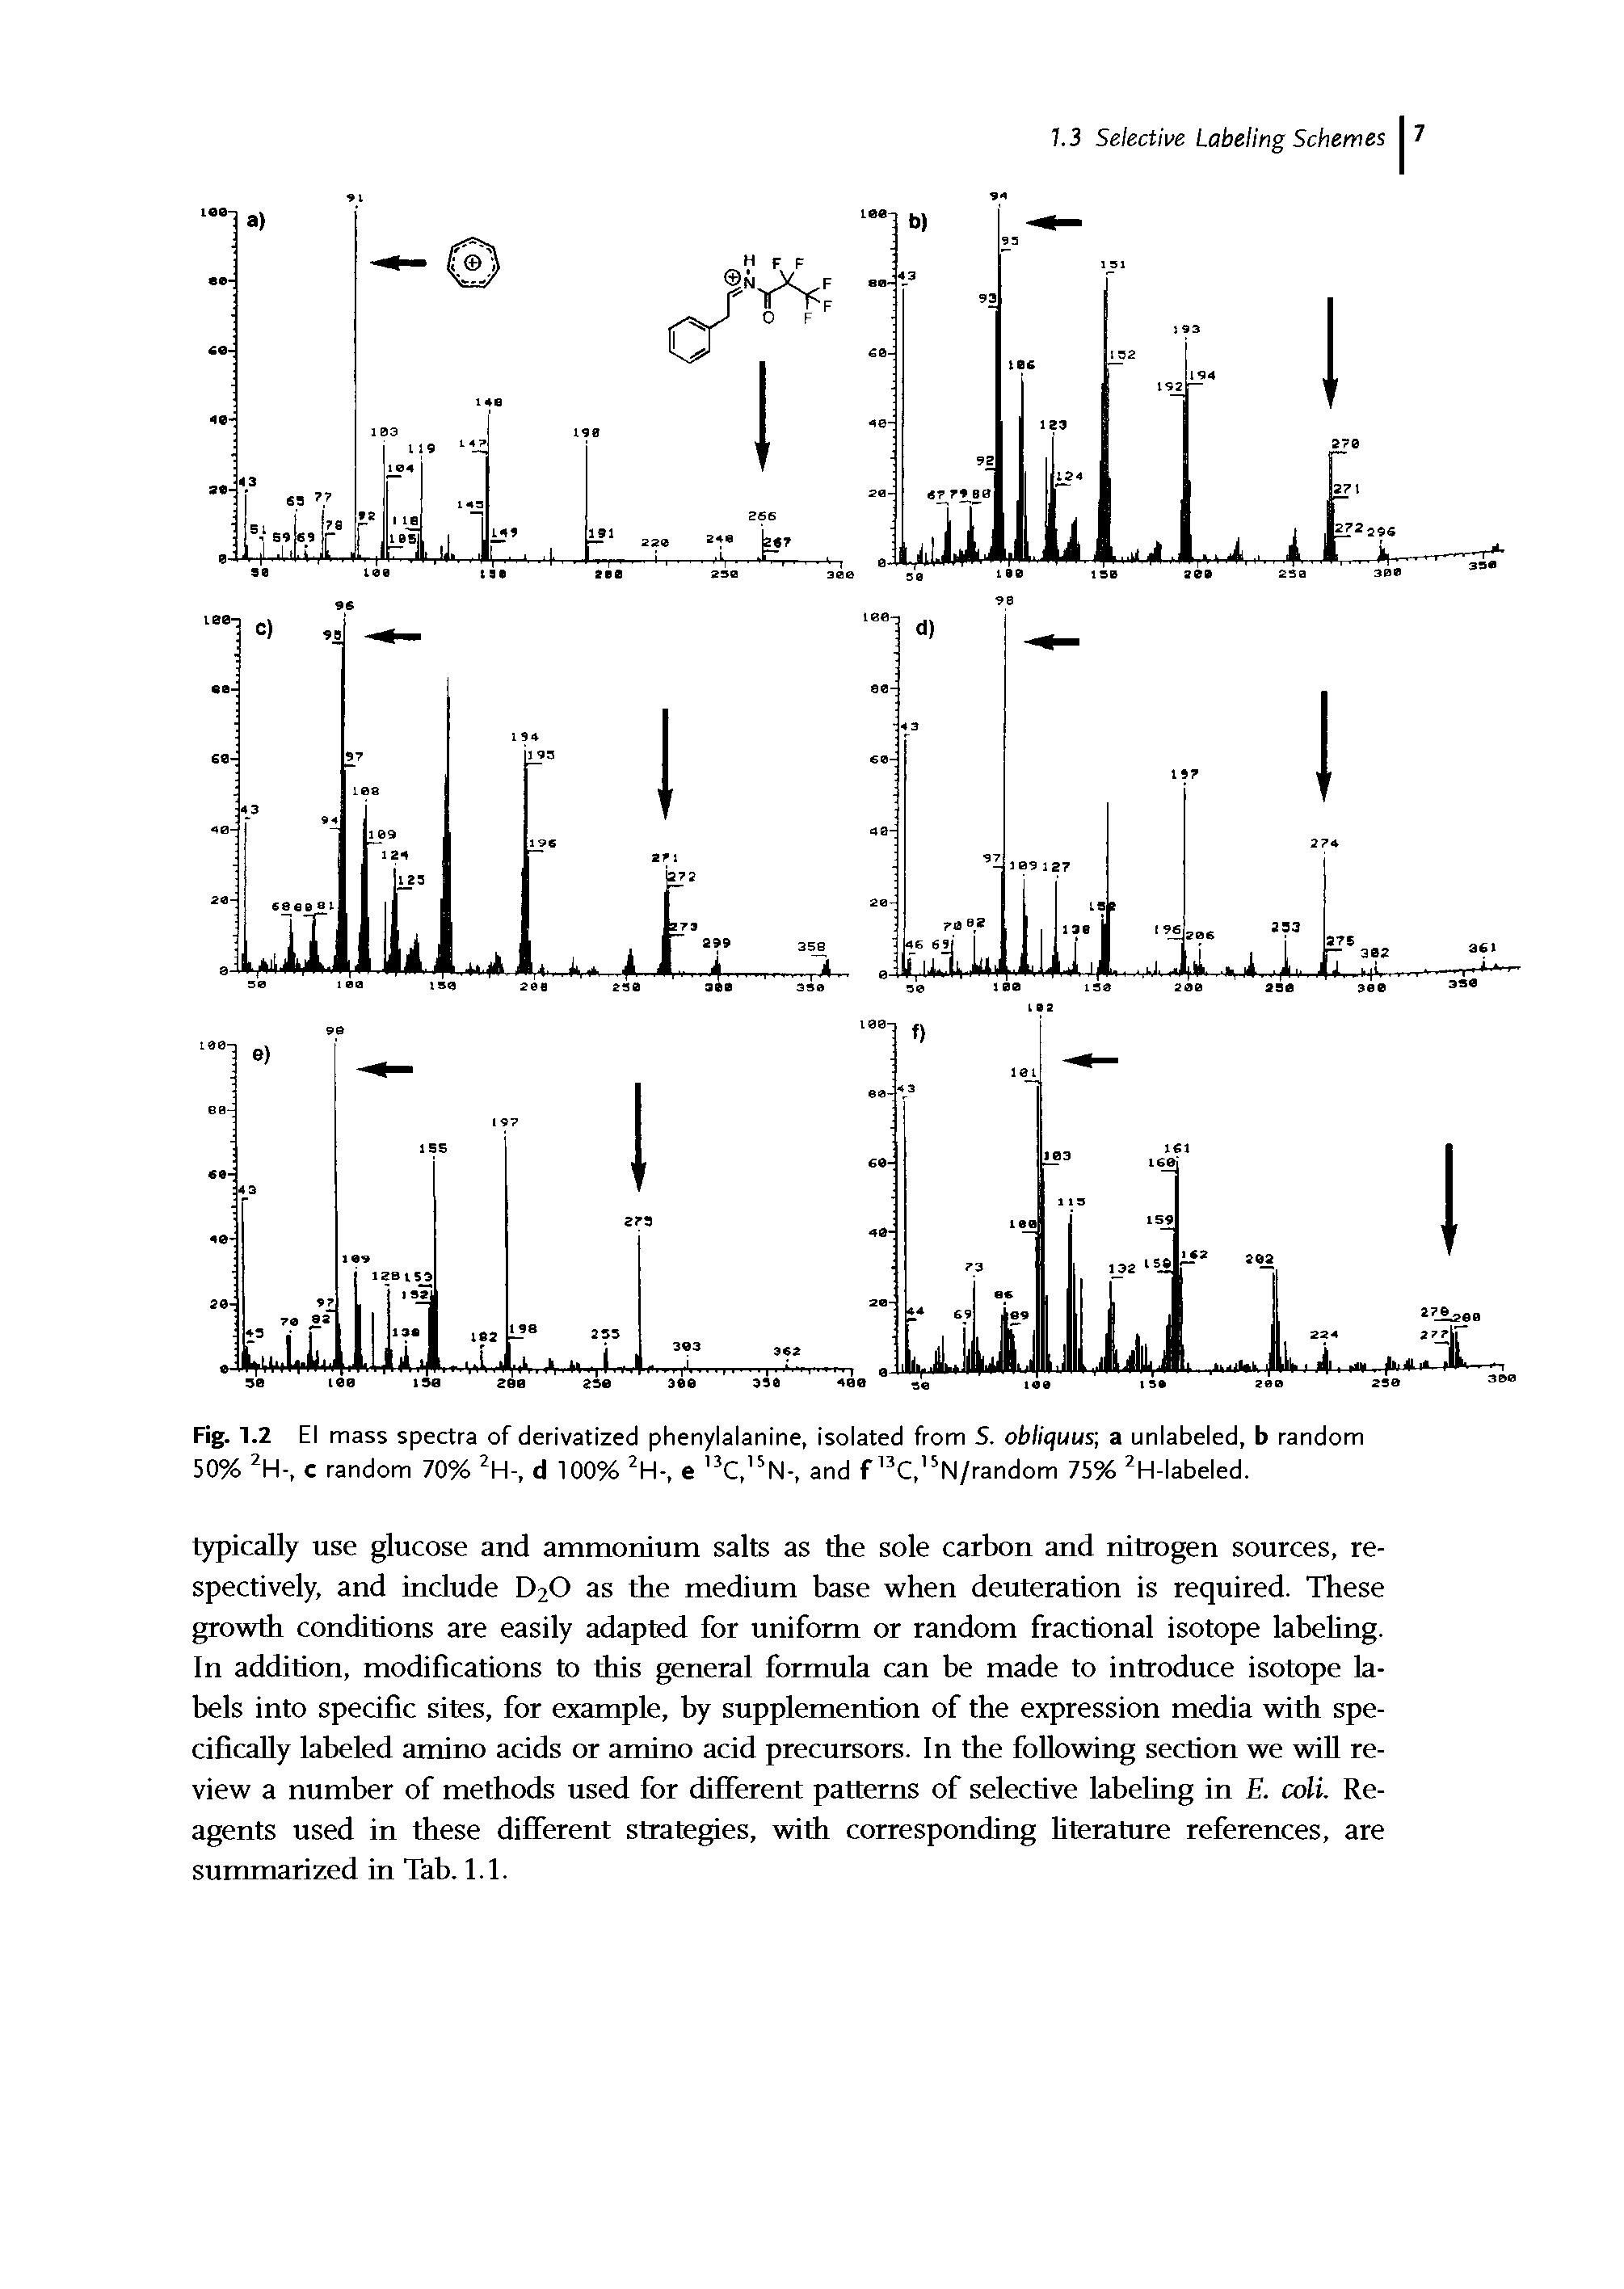 Fig. 1.2 El mass spectra of derivatized phenylalanine, isolated from 5. obliquus a unlabeled, b random 50% 2H-, c random 70% 2H-, d 100% 2H-, e 3C, 5N-, and f 13C, 5N/random 75% 2H-labeled.